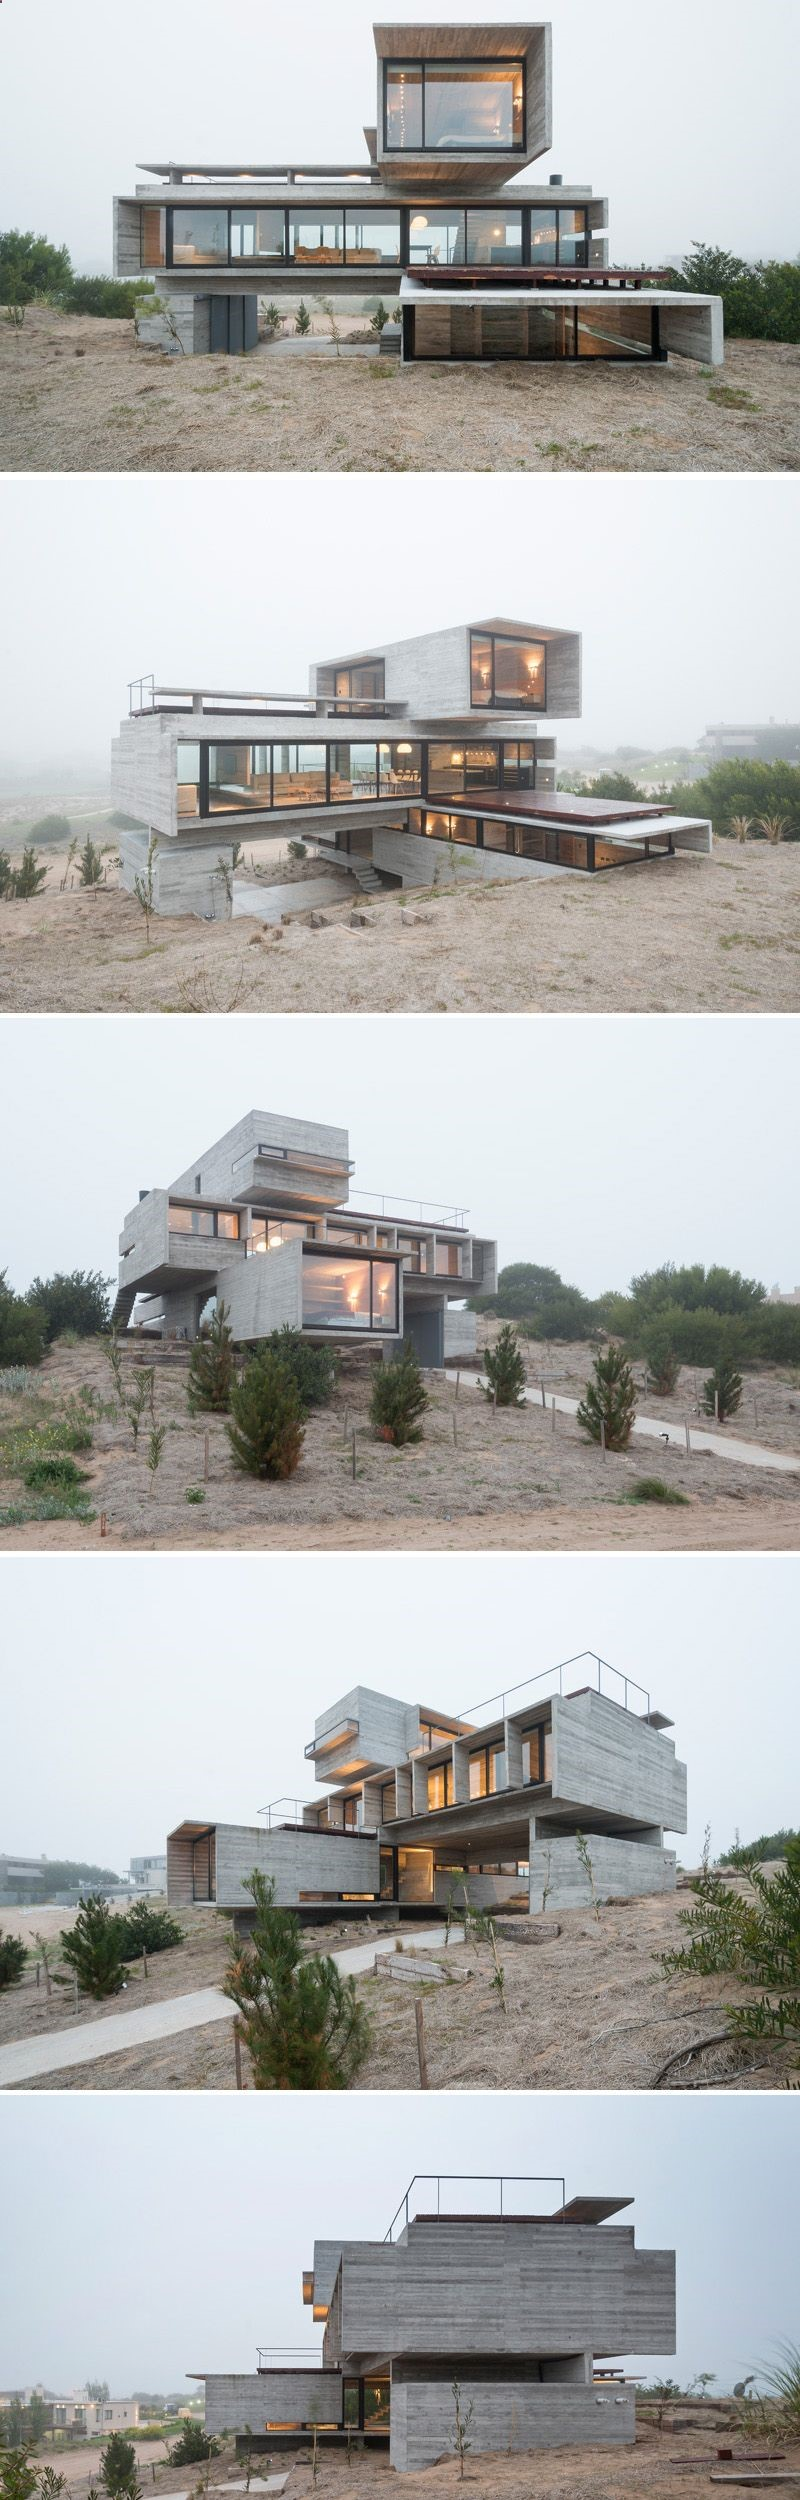 Container house architect luciano kruk designs a house made of